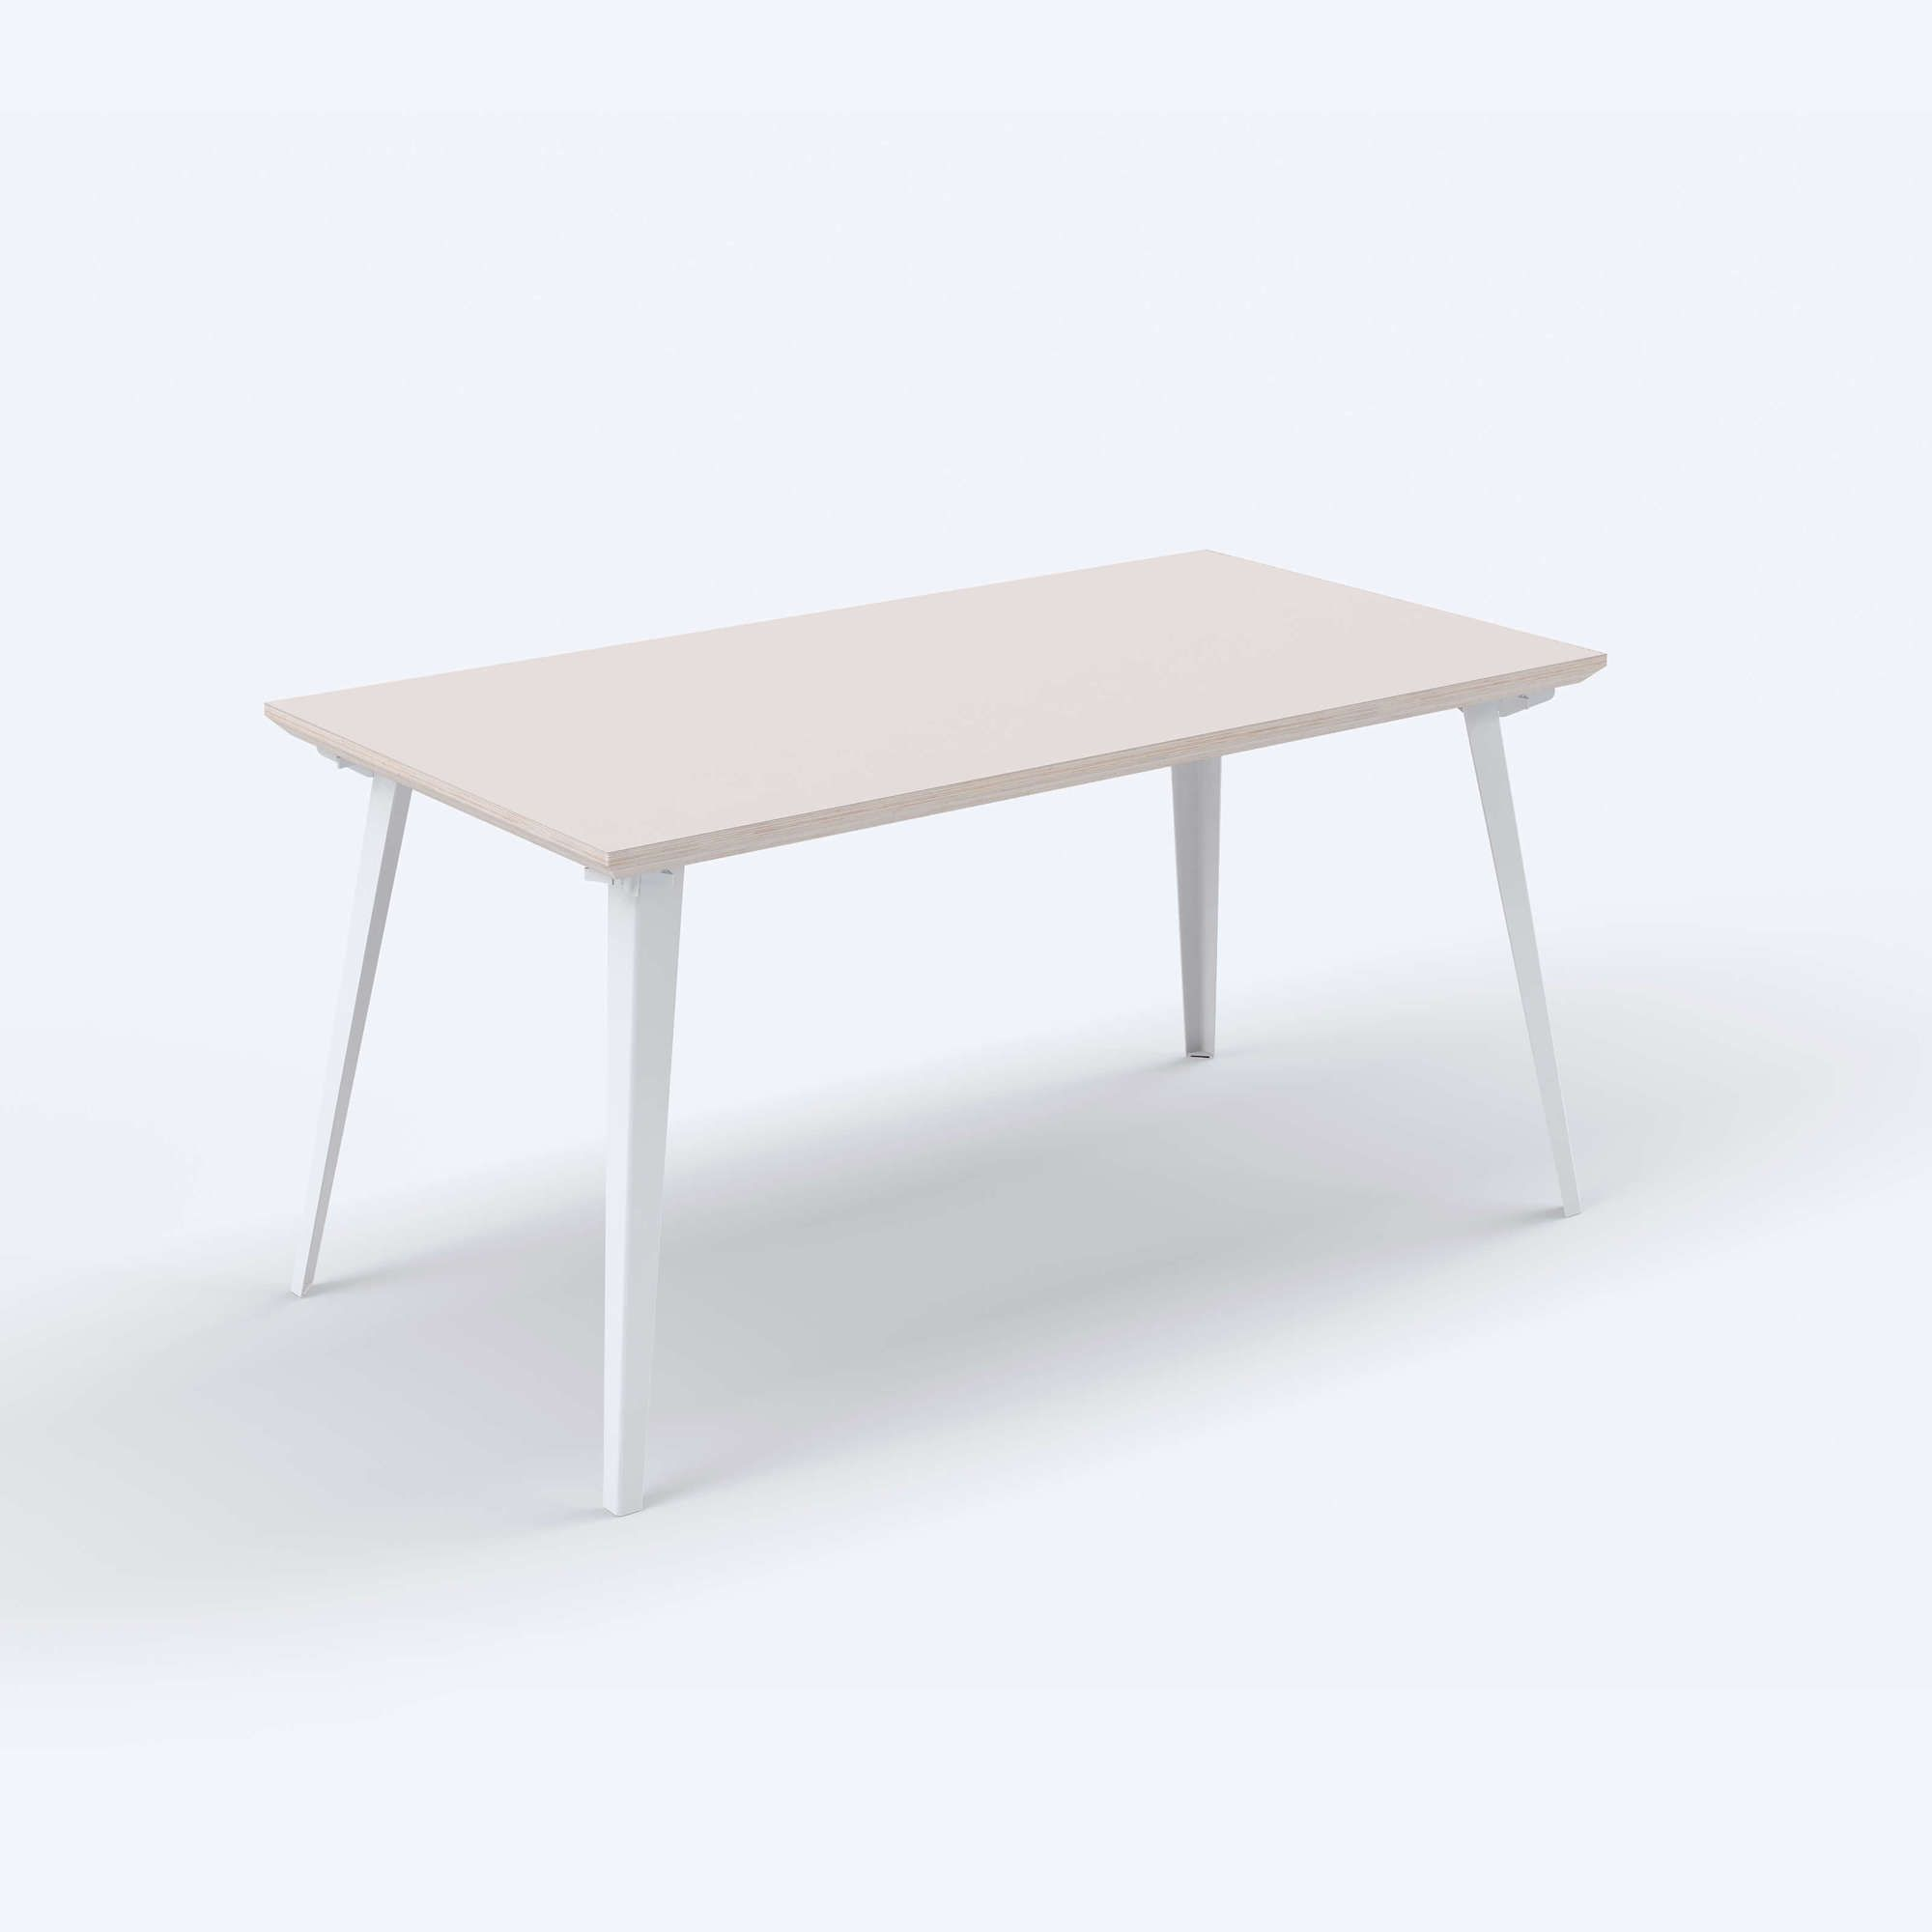 The Table Floyd Floyd With Images Birch Dining Table